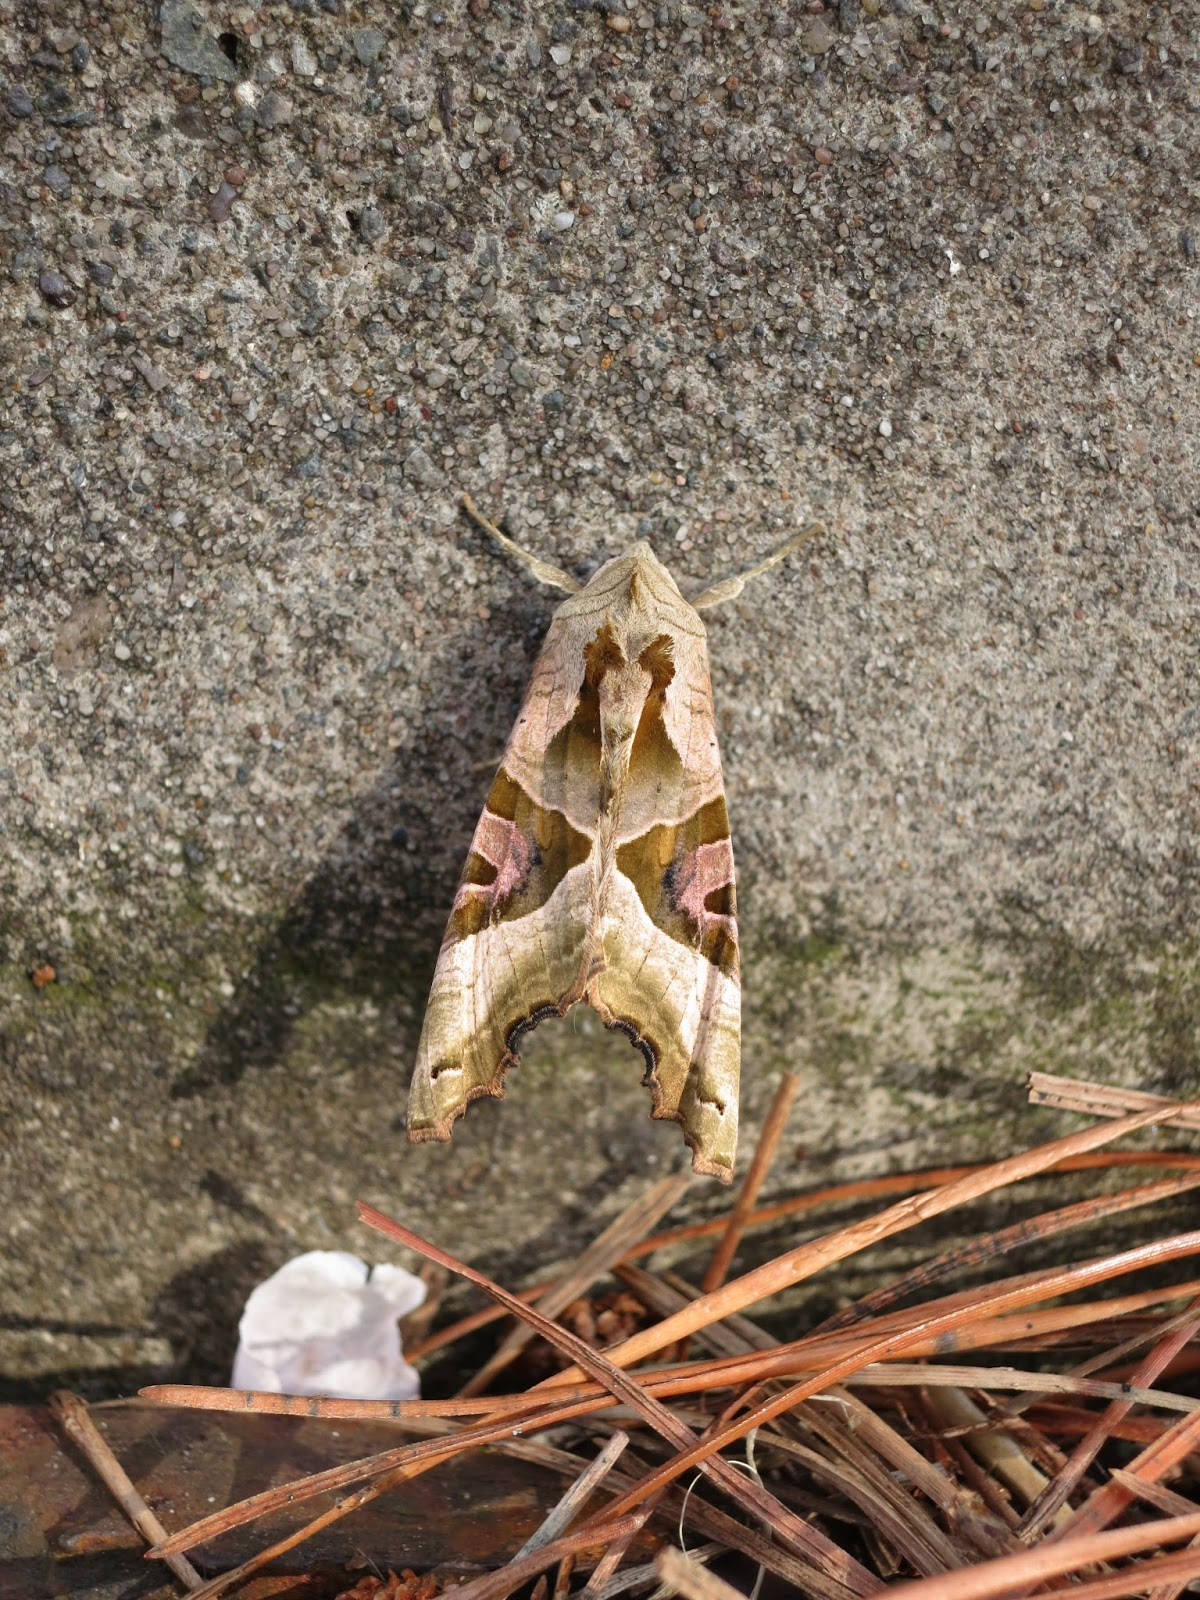 Angle Shades Moth on side of kerb with fallen pine needles